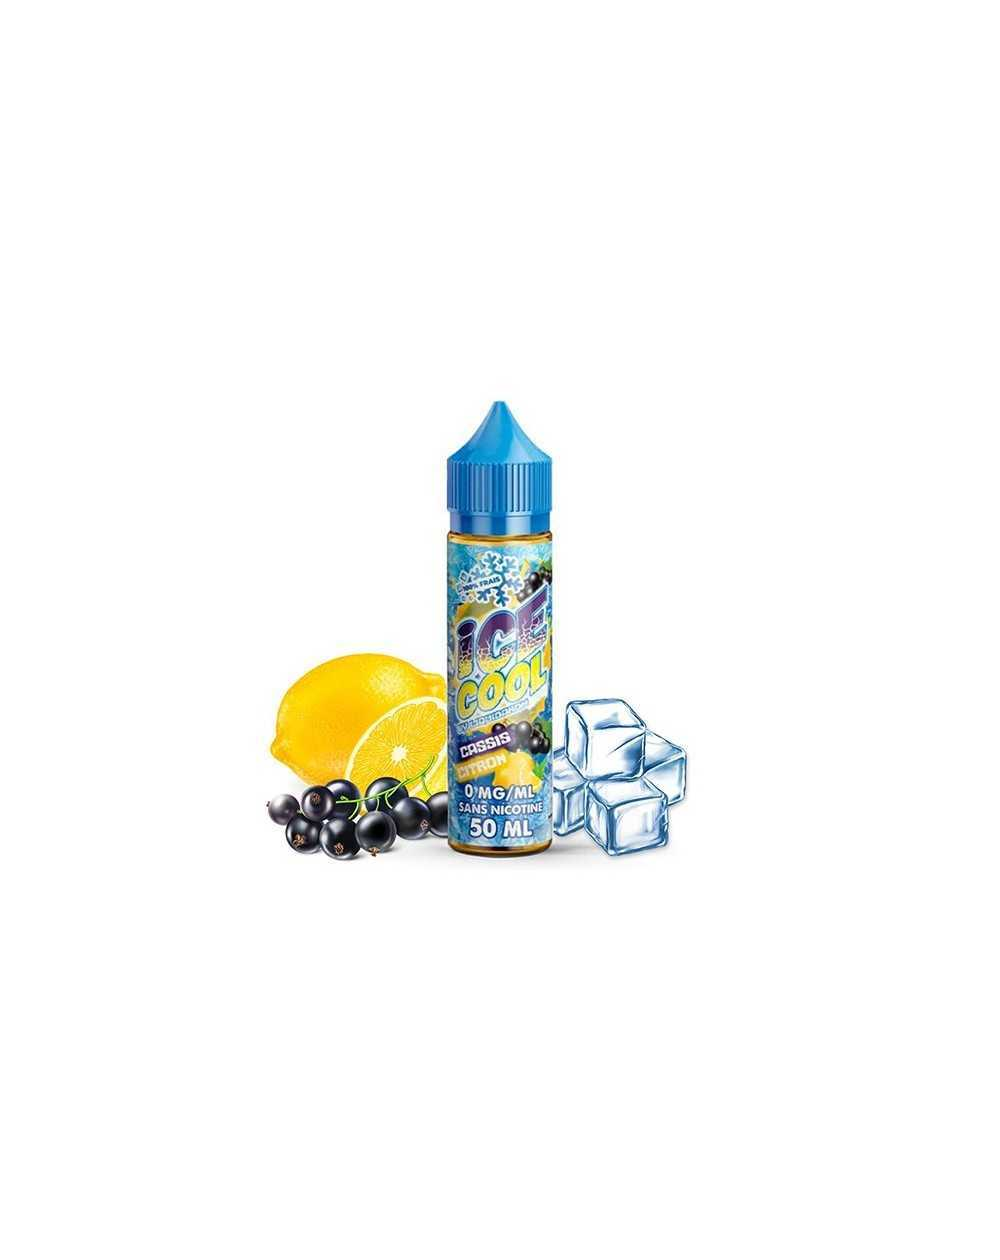 Cassis Citron 50ml - Ice Cool by Liquidarom-1